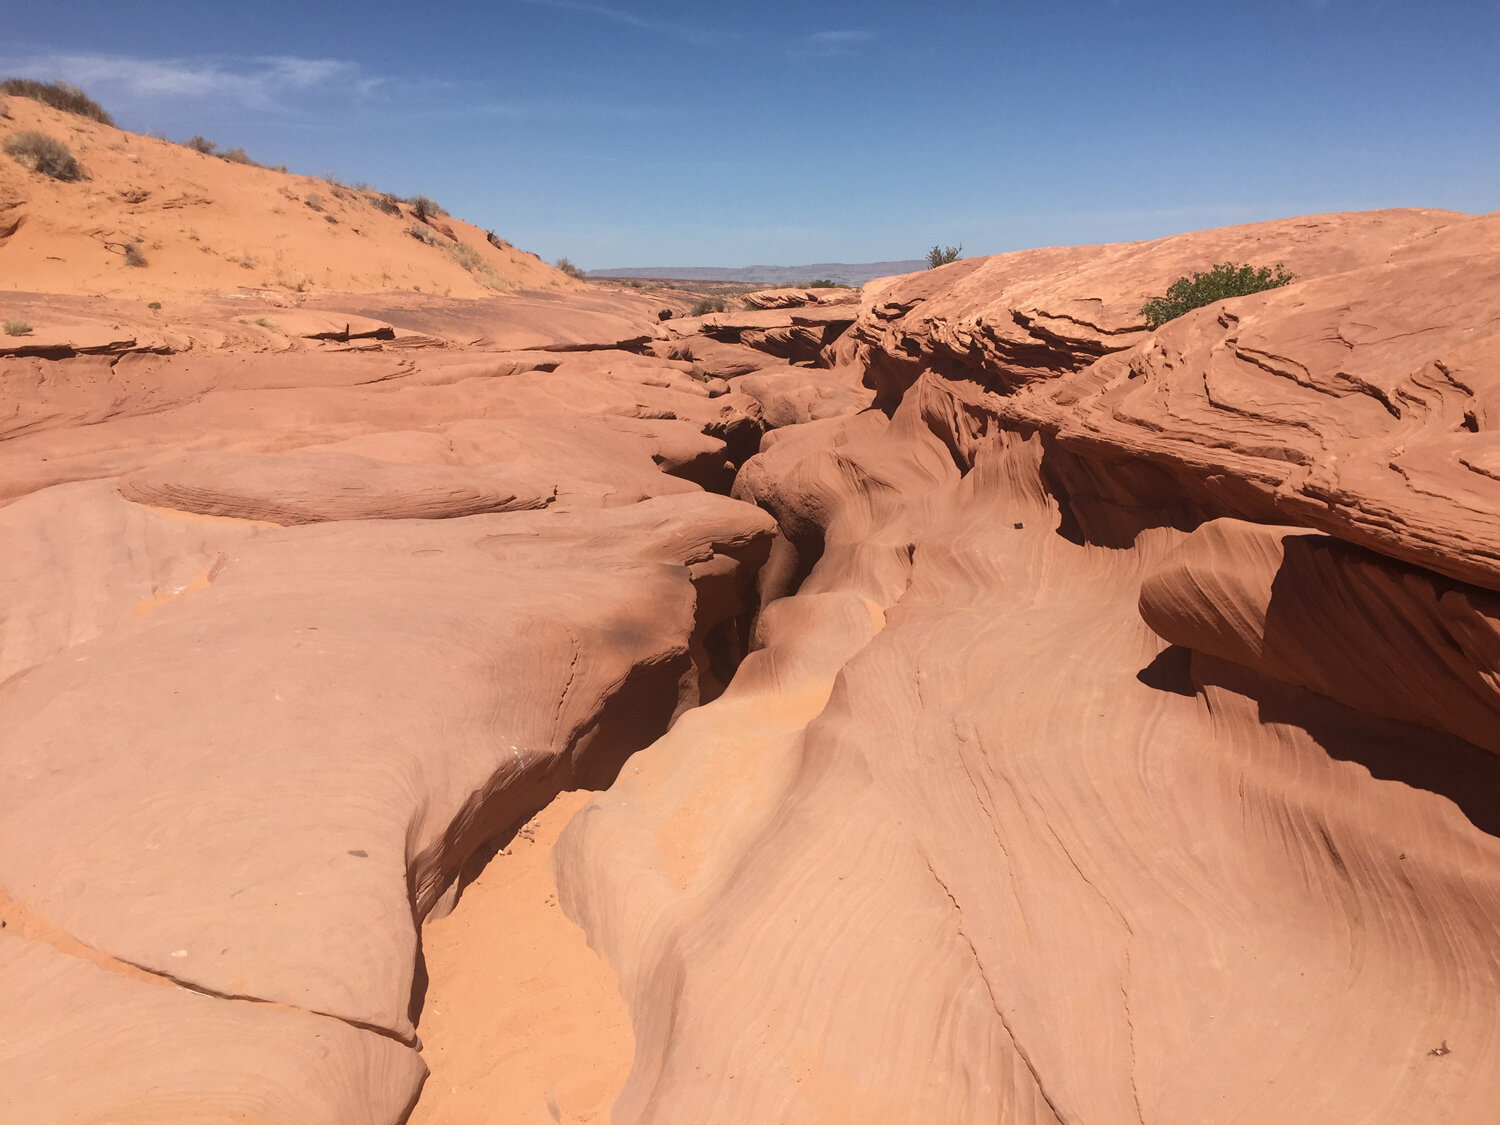 Exploring: Lower Antelope Canyon in Arizona — We Quest for Adventure